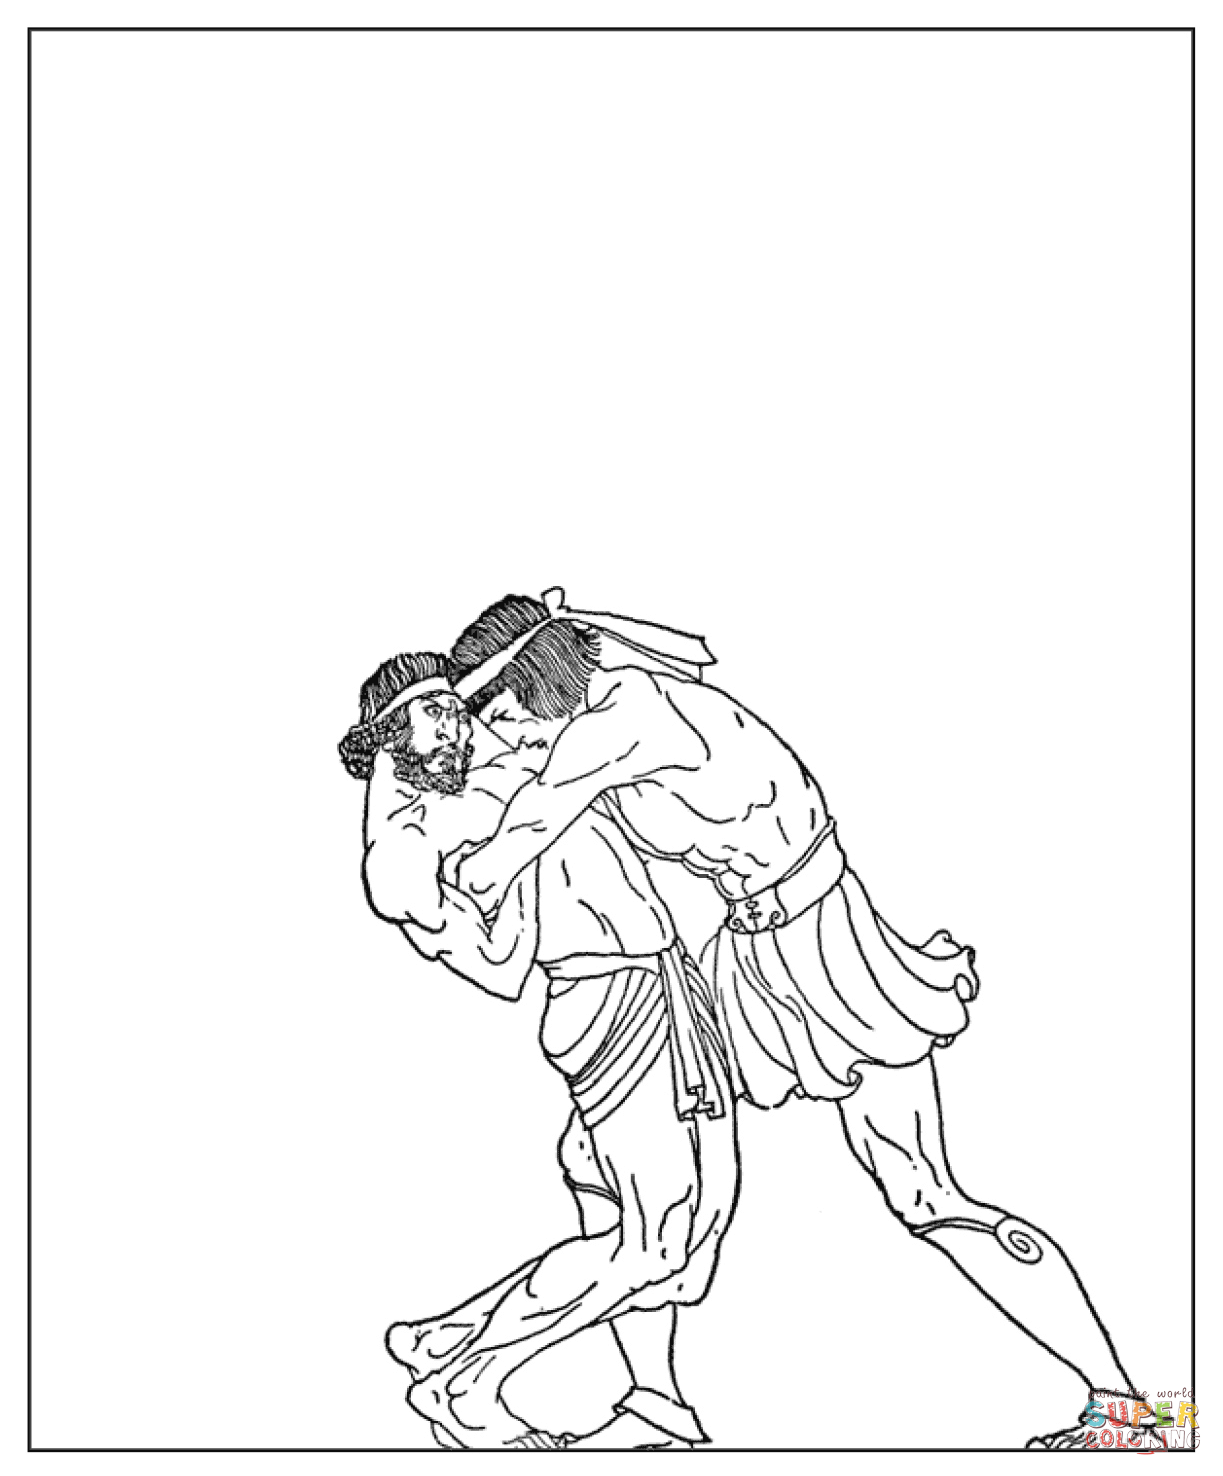 The Bout Between Theseus and the Lordly coloring page